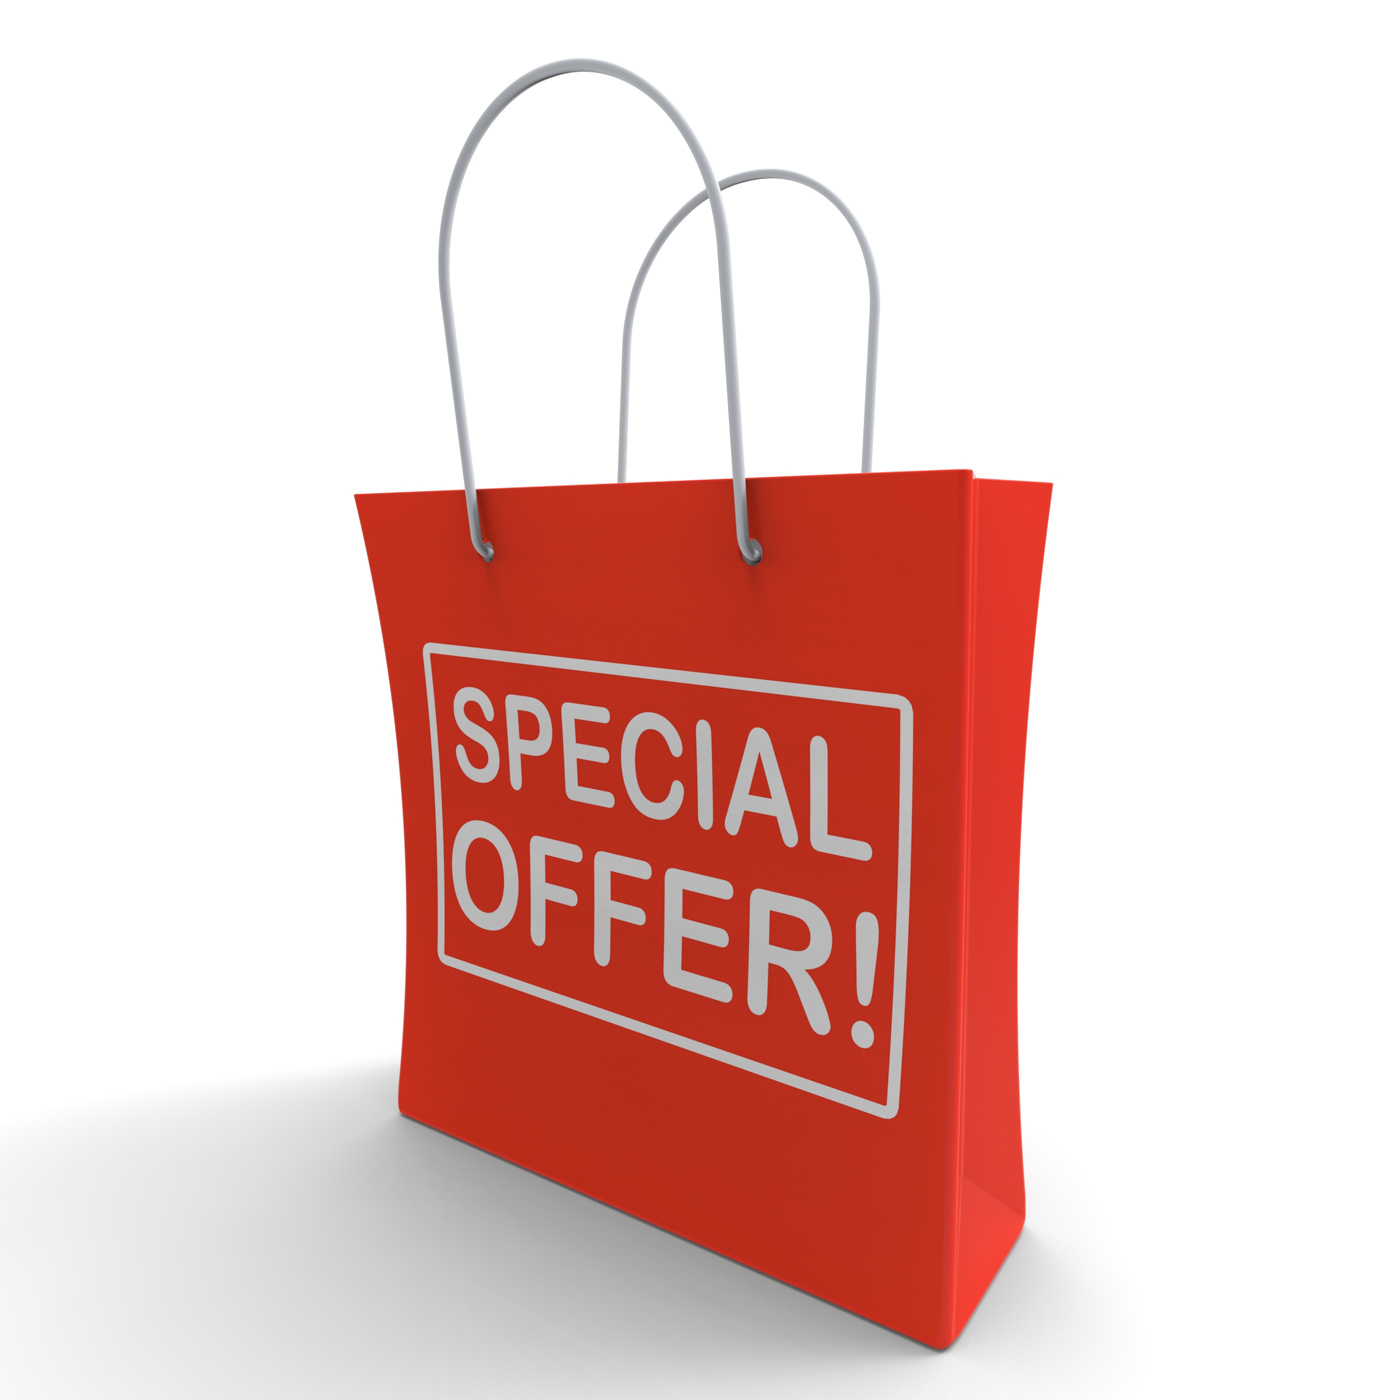 Special offer shopping bag shows bargain photo